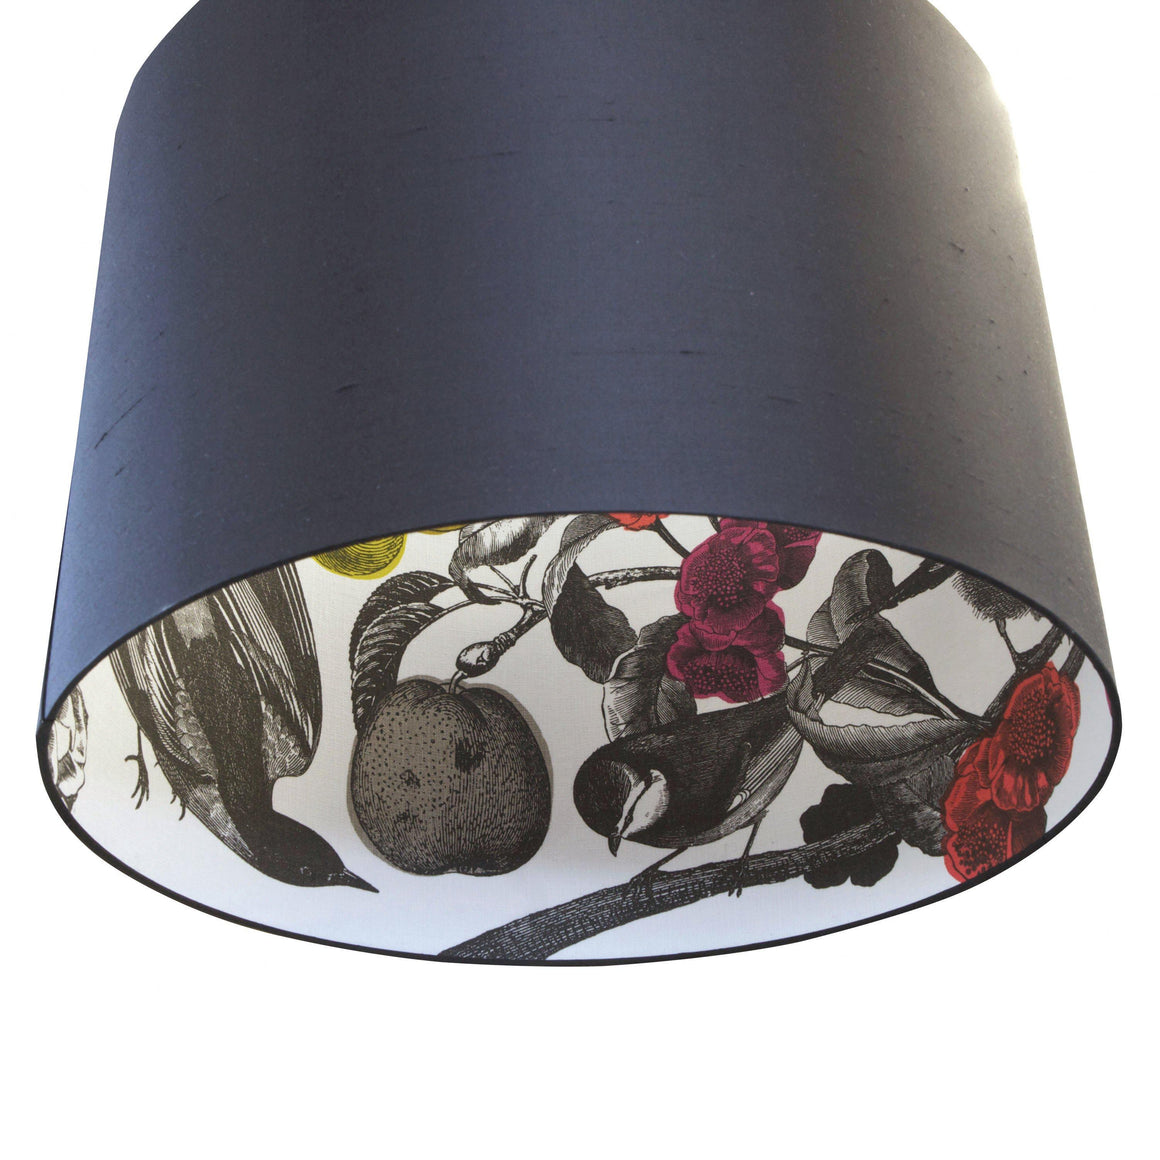 GARDEN BIRDS - SILK INSIDE OUT LAMPSHADES